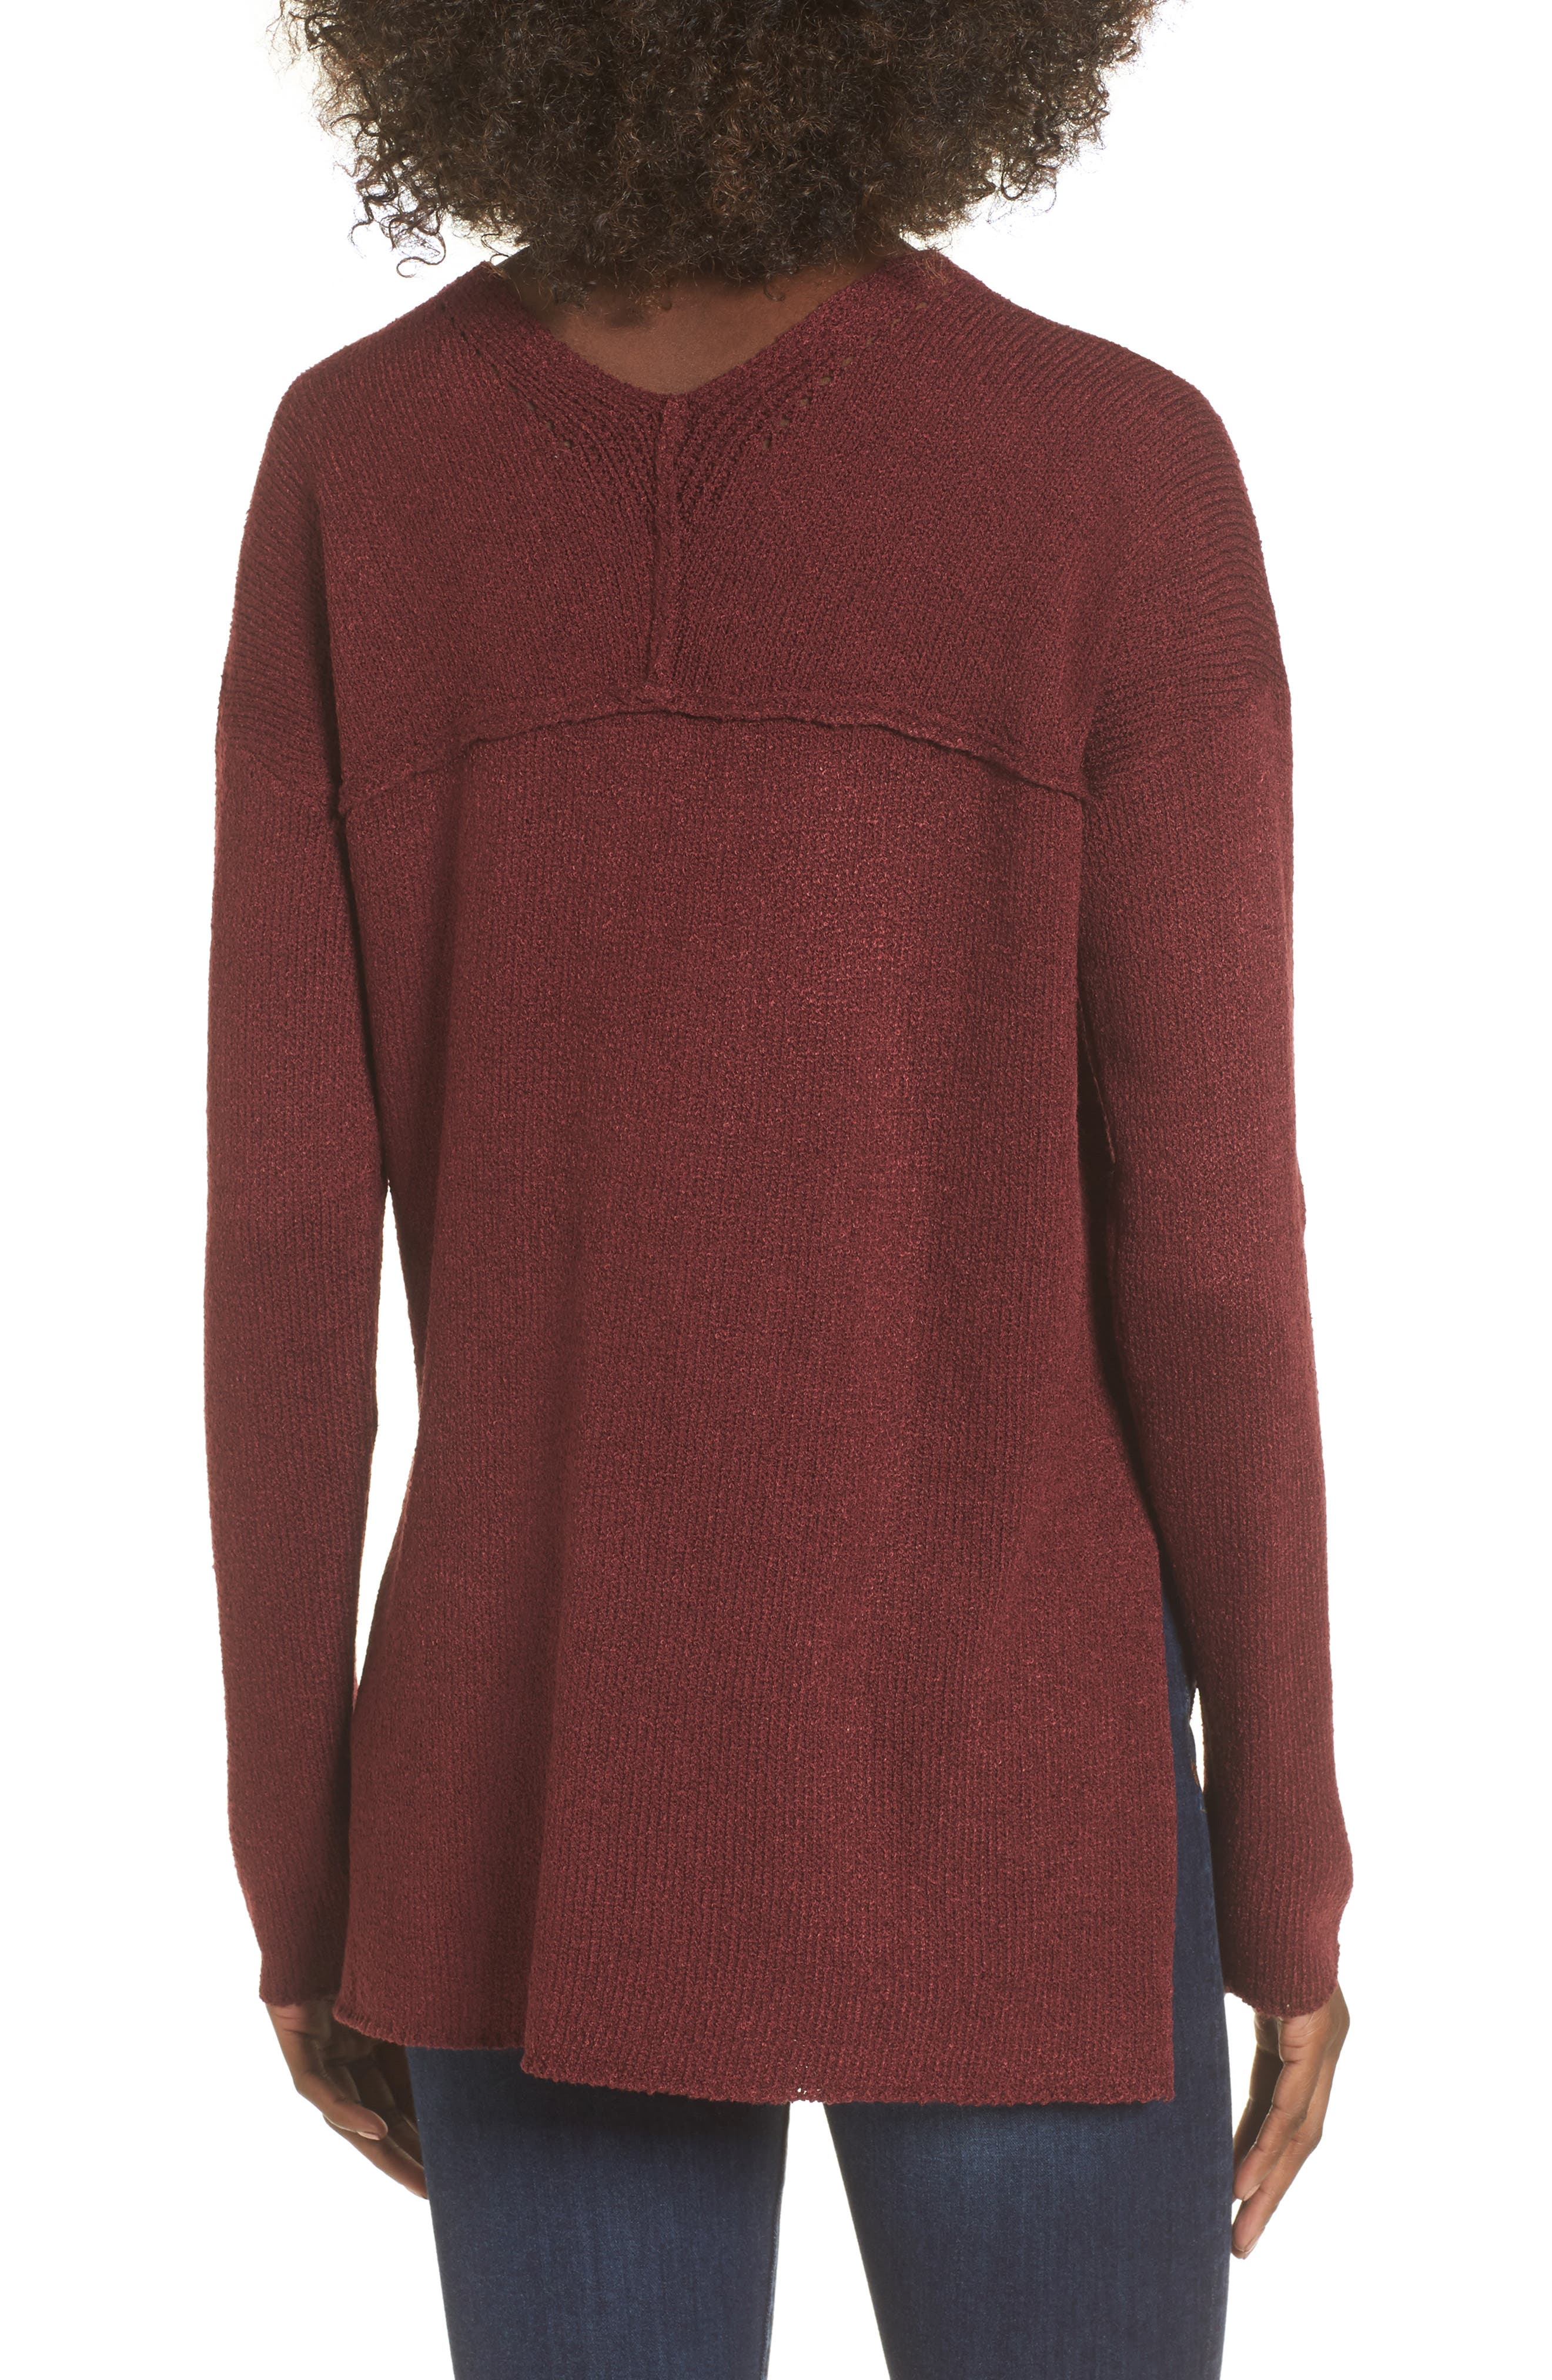 ASTR Lace-Up Sweater,                             Alternate thumbnail 2, color,                             930